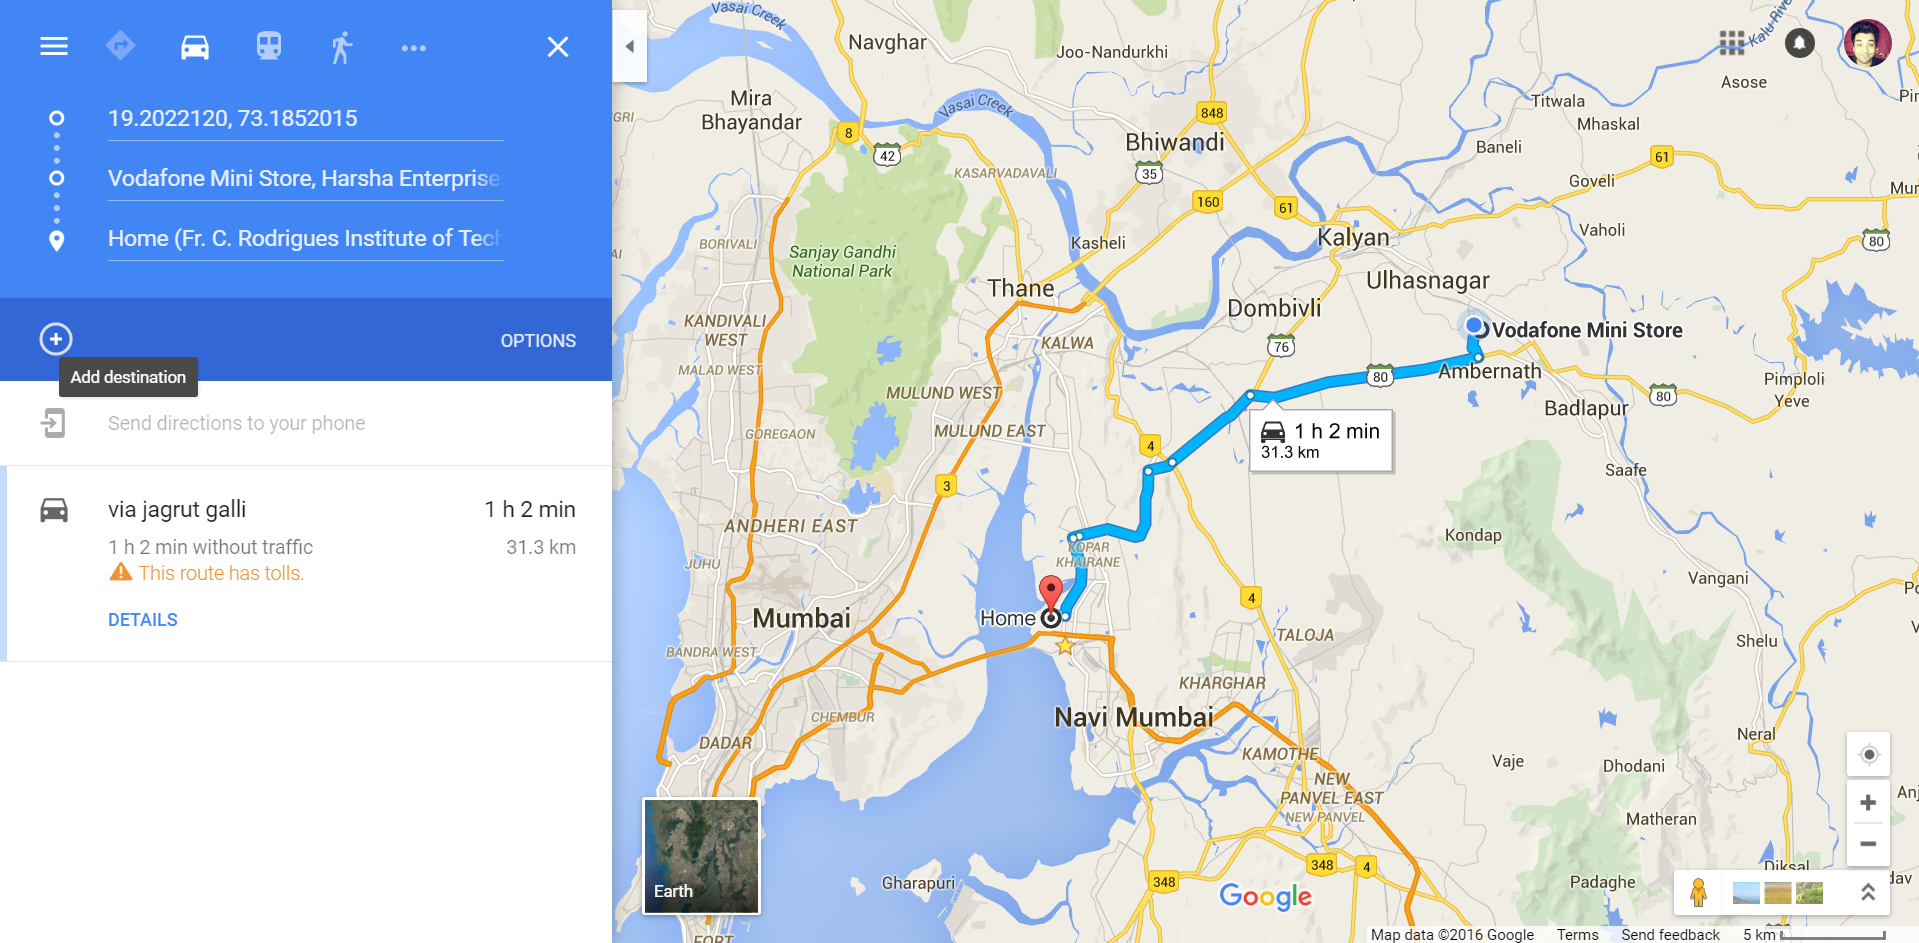 Google Maps for Android Now Let's You Add Multiple Destinations on